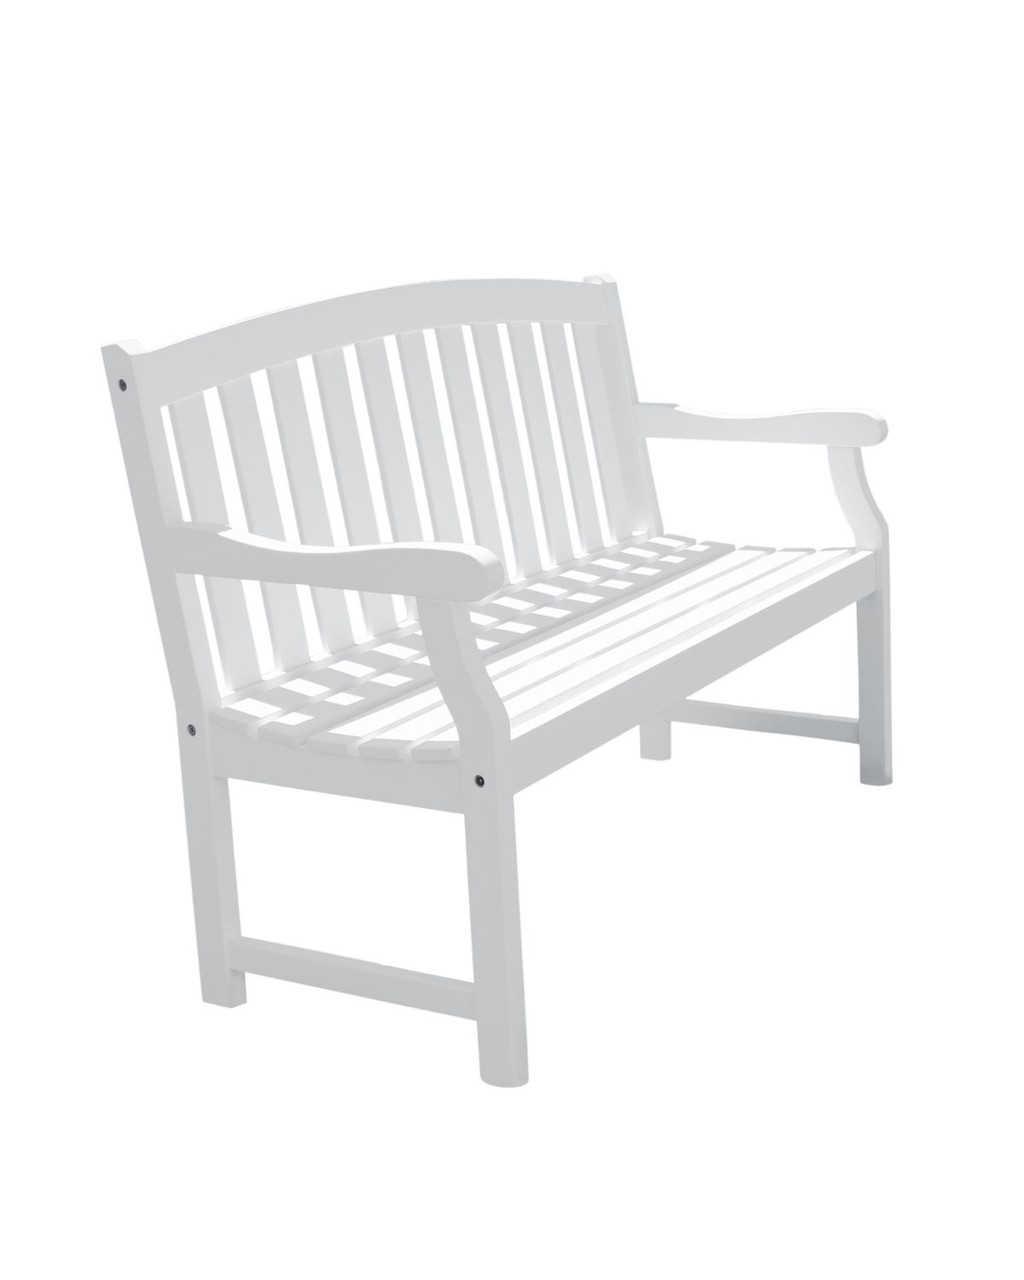 57 White Painted Finish Curved Back Outdoor Furniture Patio Bench Christmas Central